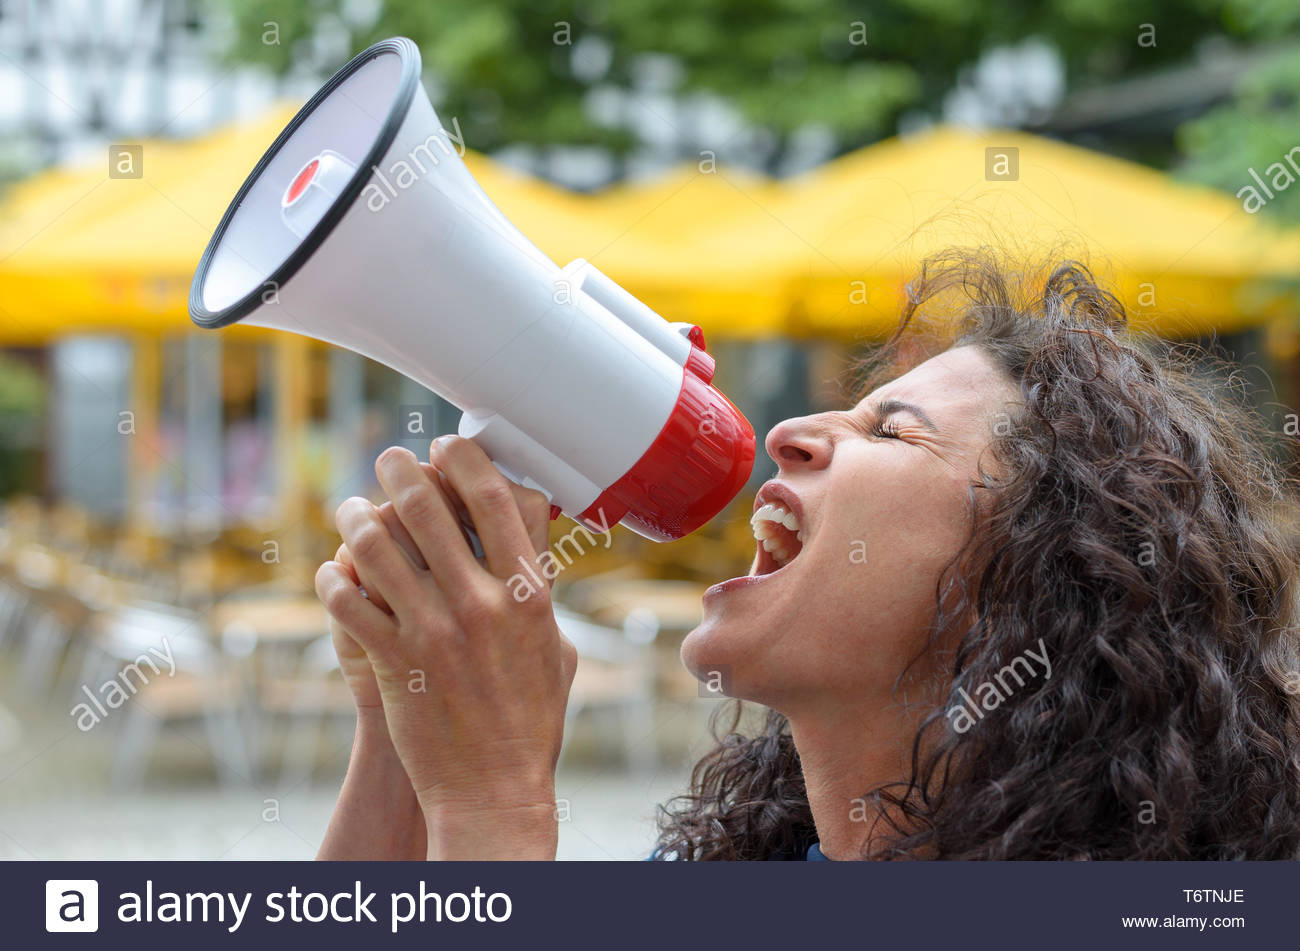 Angry young woman using a loud hailer - Stock Image